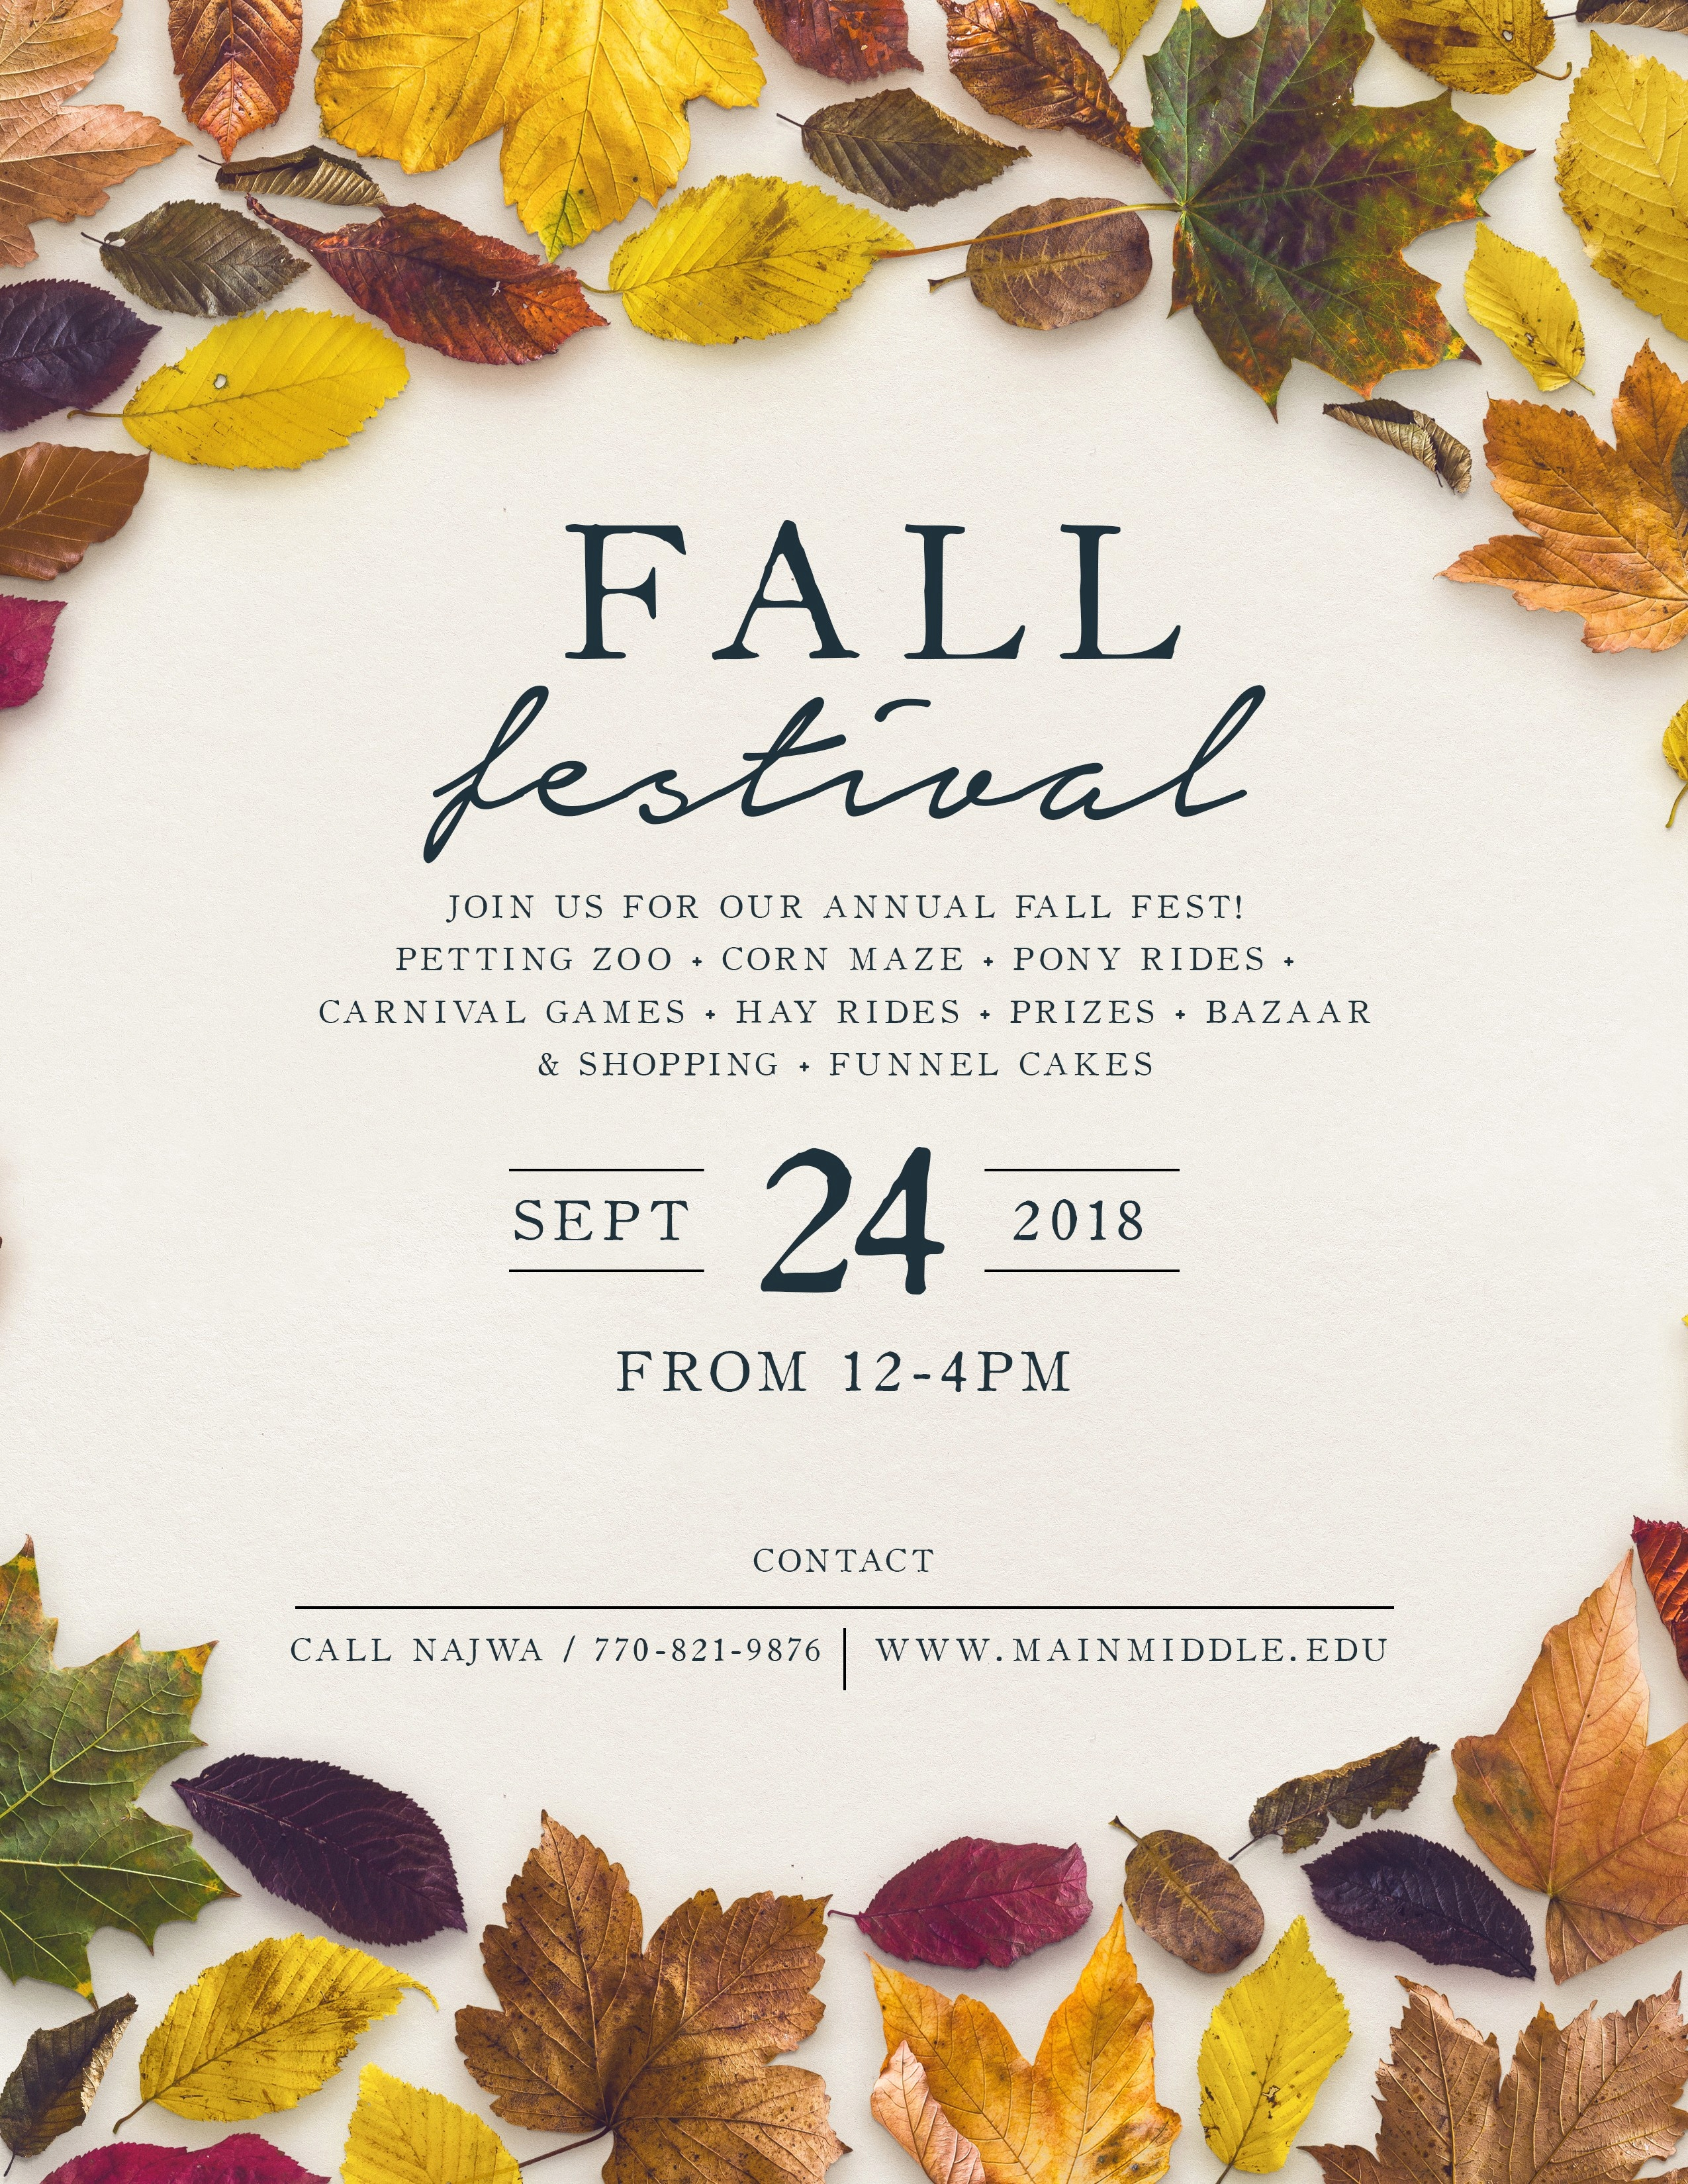 50 Luxury Free Fall Flyer Templates | Speak2Net - Free Printable Fall Flyer Templates